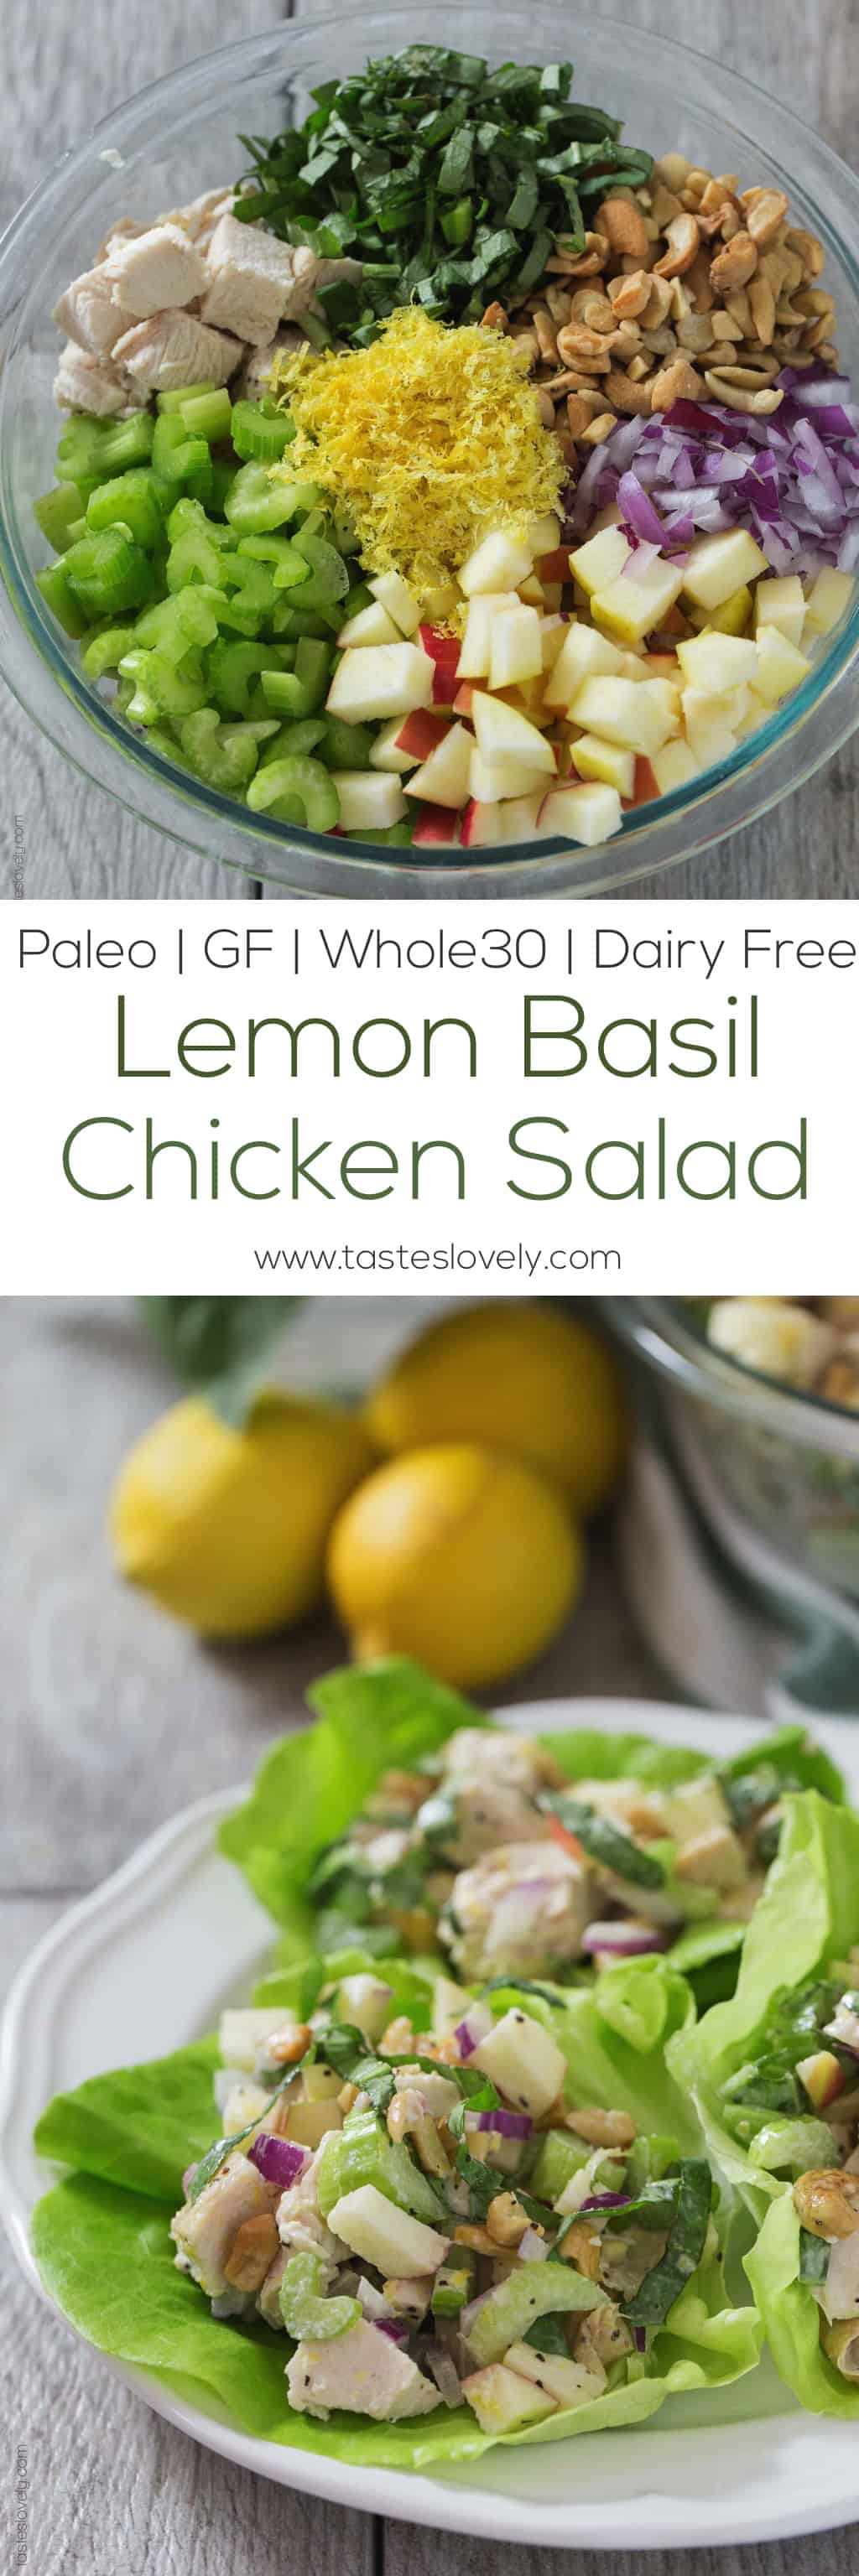 Paleo Lemon Basil Chicken Salad Lettuce Wraps - a light and healthy ...